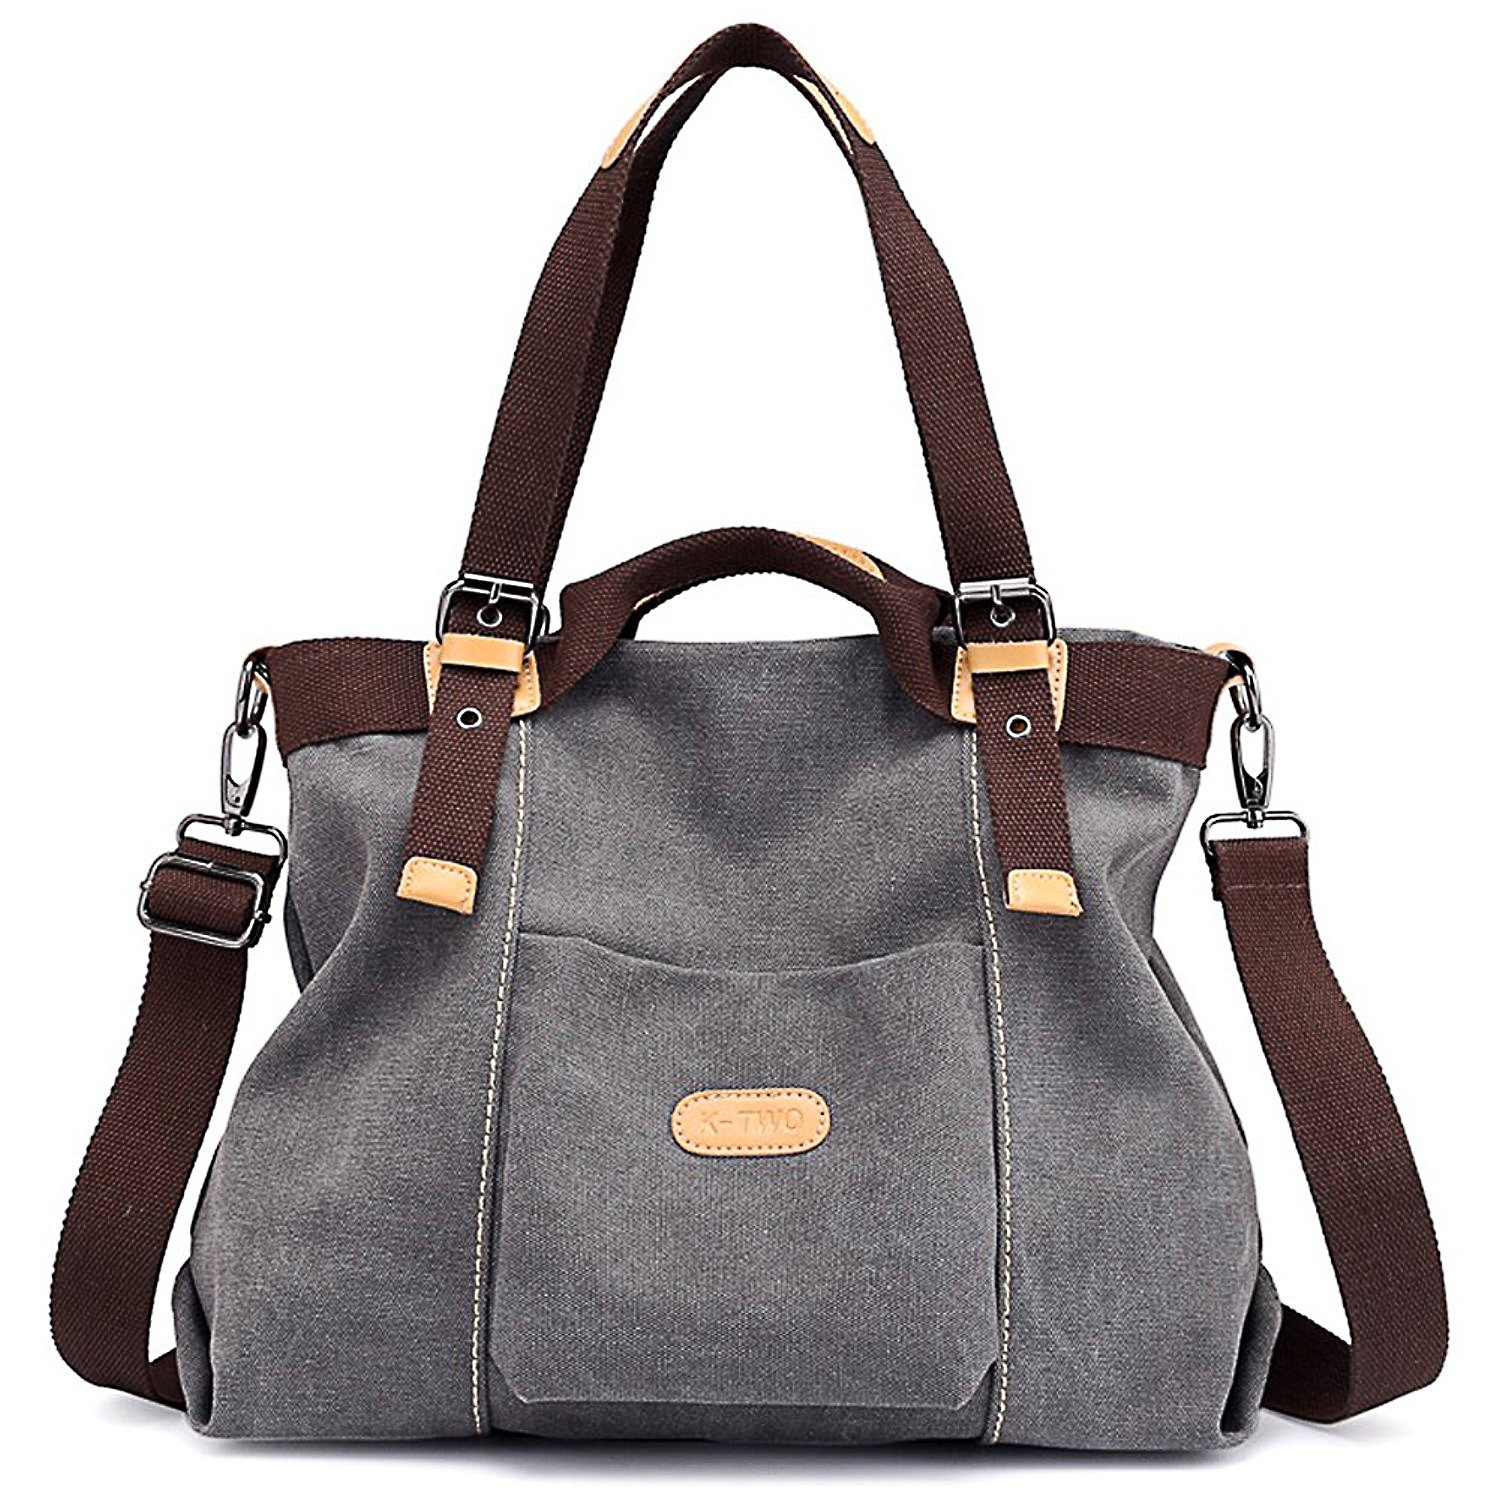 Canvas Handbag, JuguHoovi Casual Hobo Purse Tote Bag Top Handle Handbags Crossbody Bags for Women